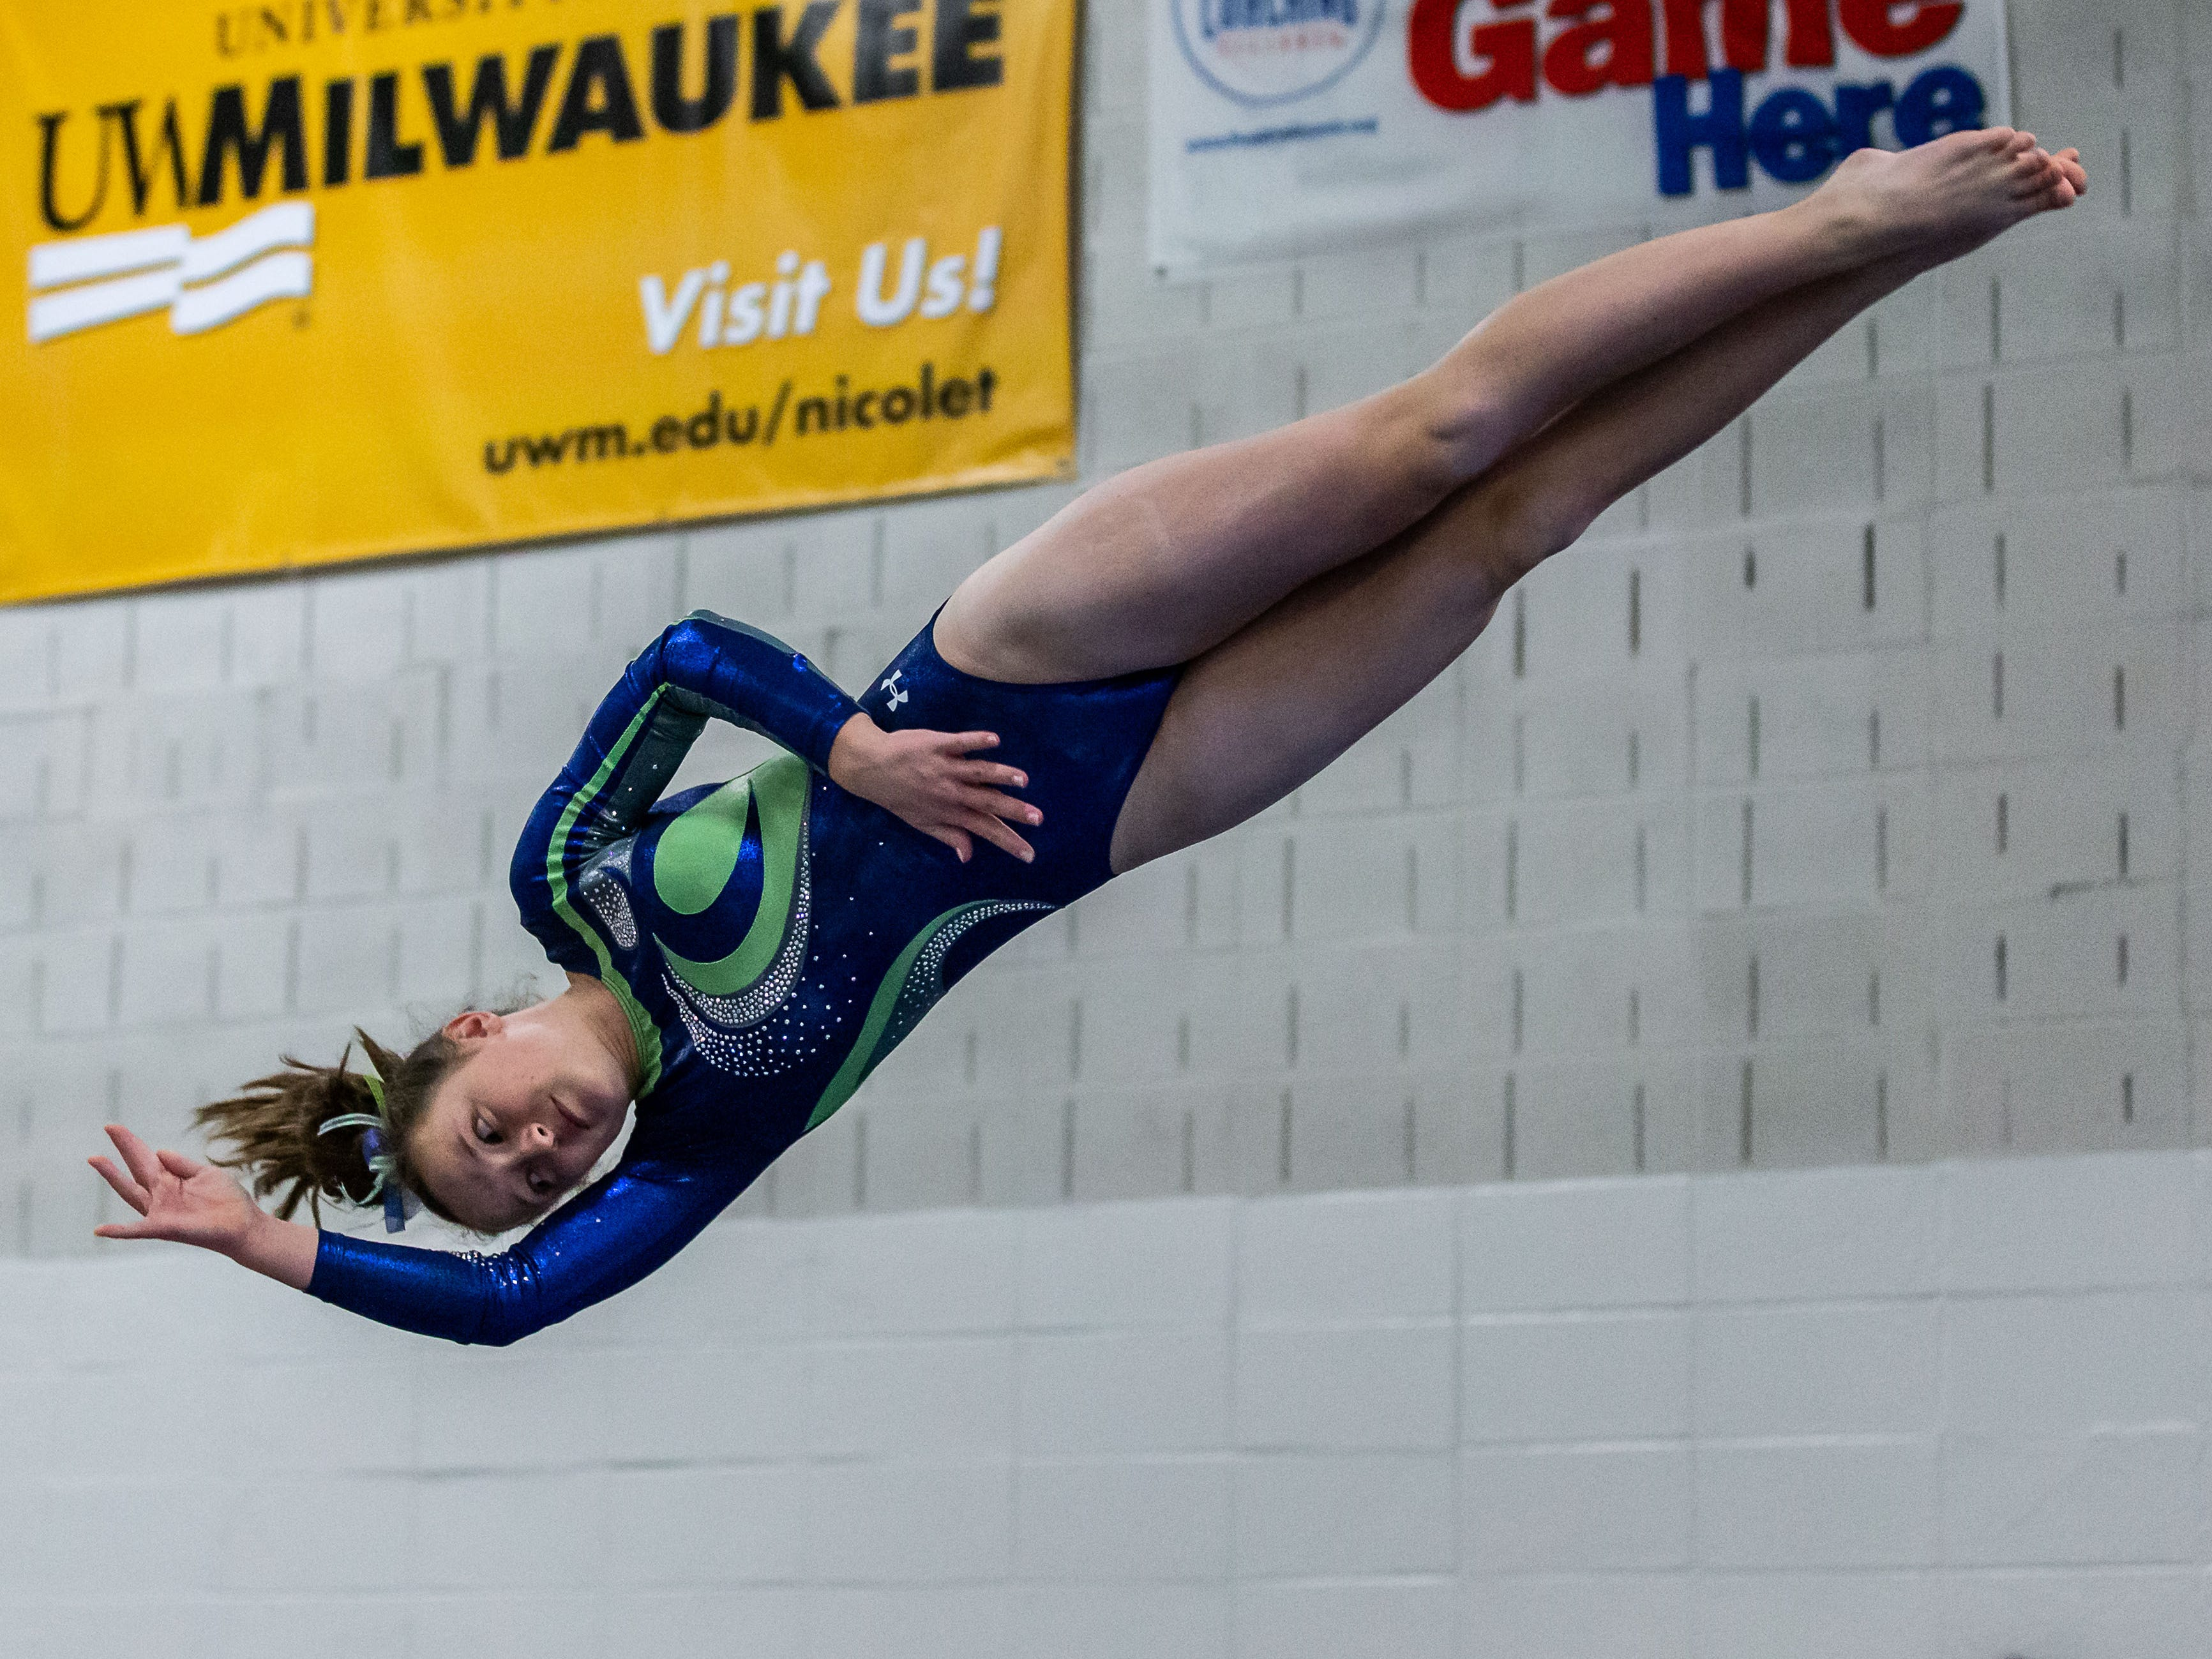 Whitefish Bay gymnast Madi Kogler launches off the vault during the meet at Nicolet on Thursday, Jan. 3, 2019.